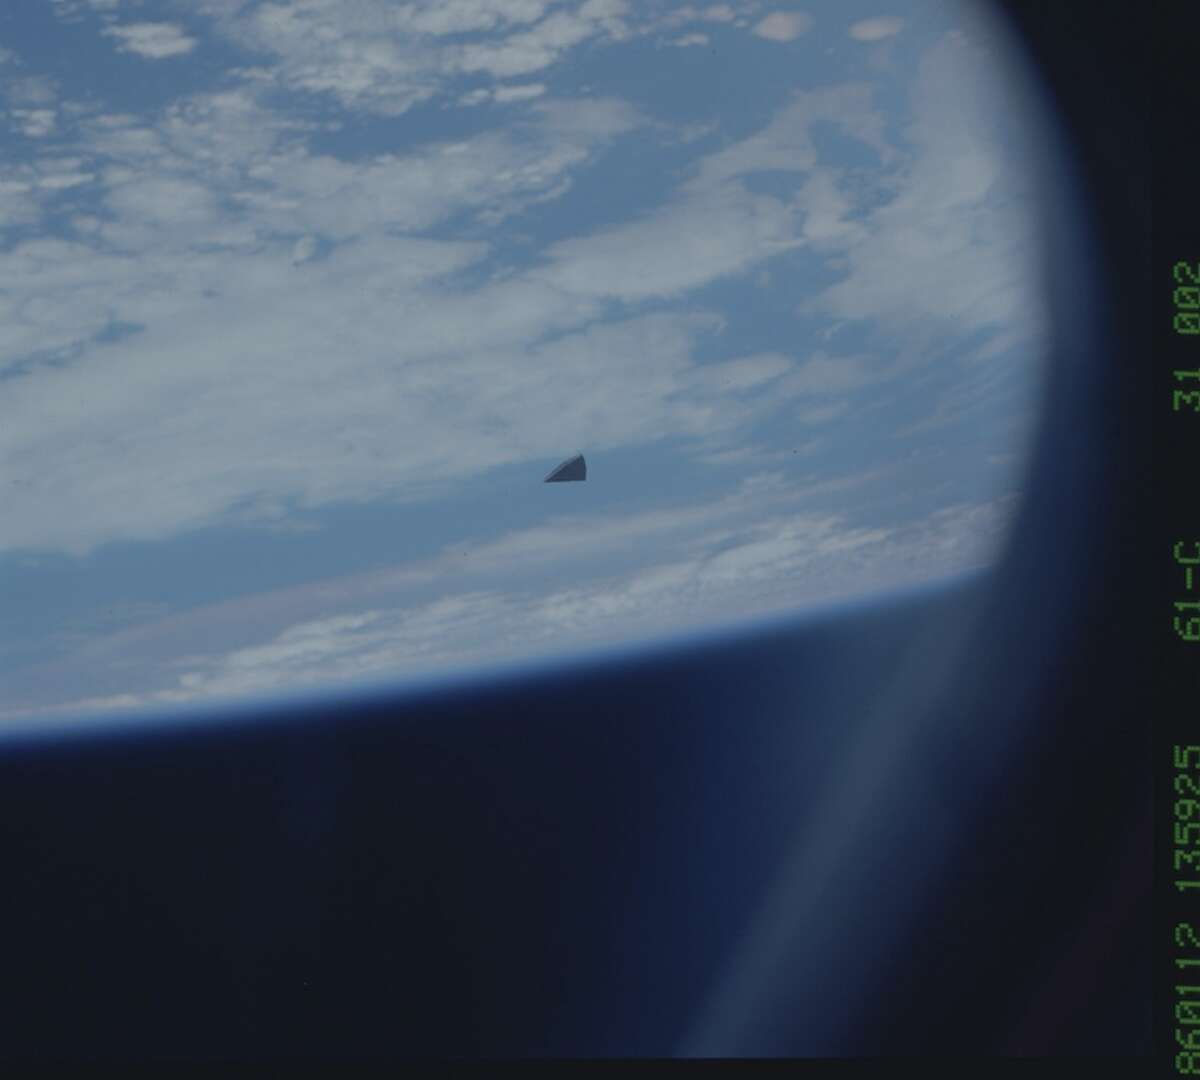 Hi-res snapshot of the mysterious object in space. (Check out the story for what it is).